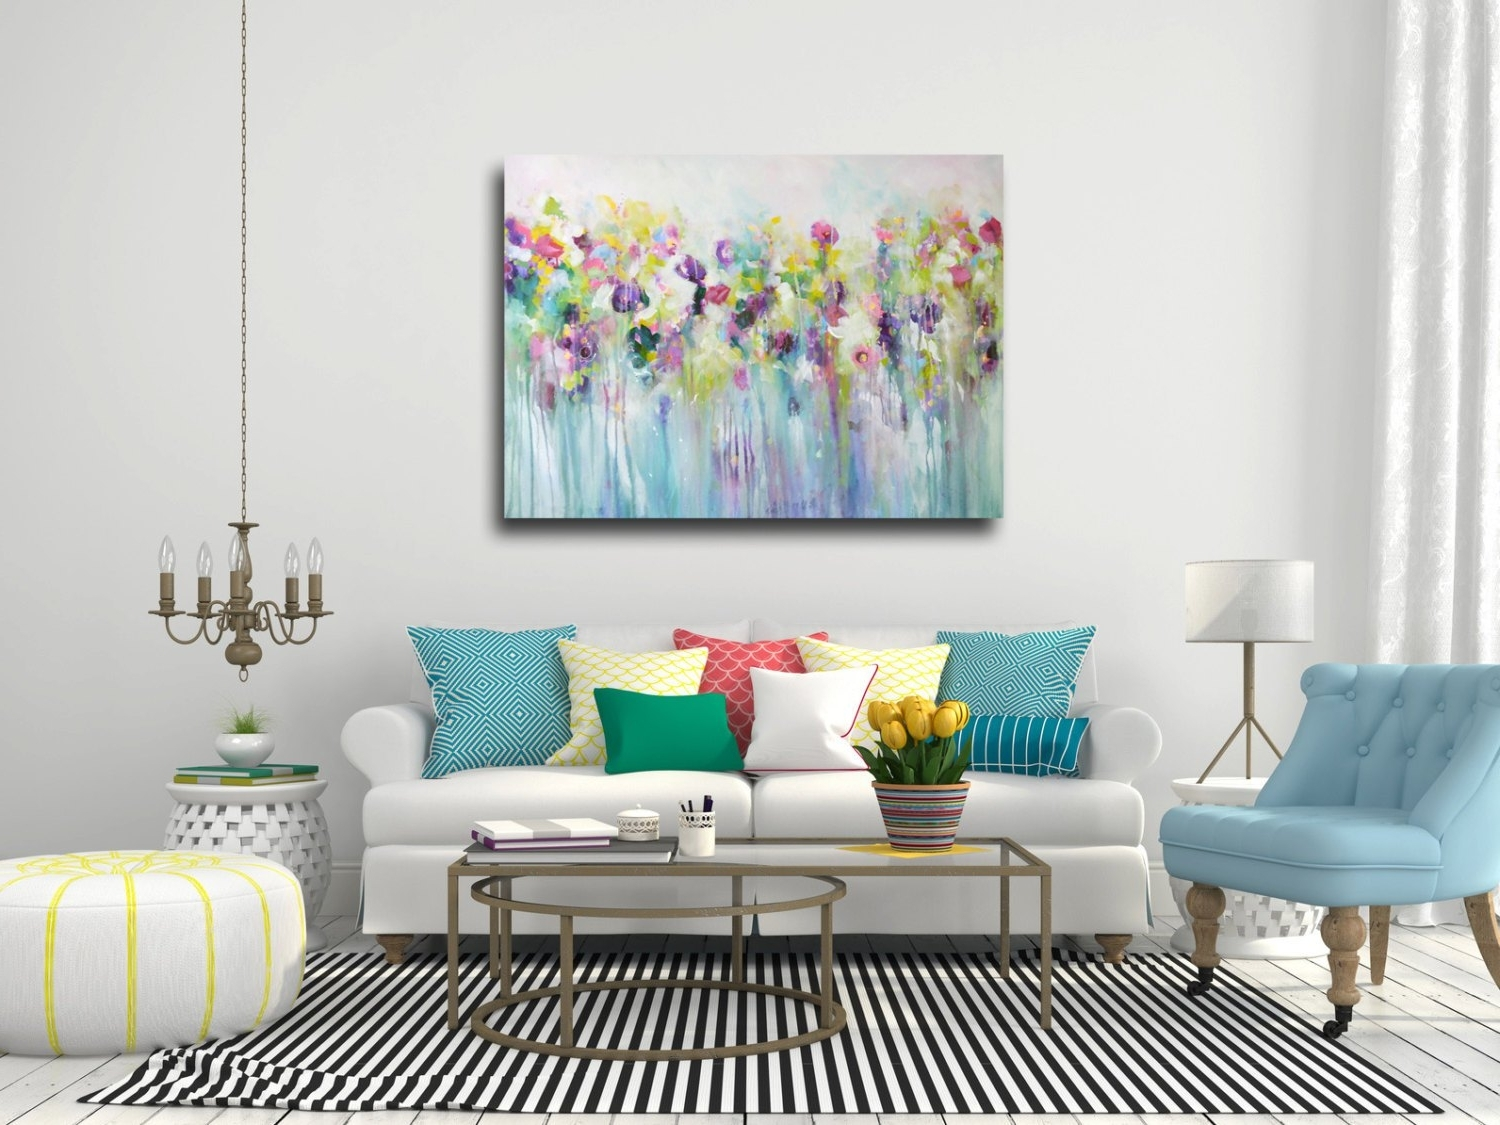 2017 Large Wall Art Canvas Art Abstract Floral Canvas Print, Oversized In Floral Canvas Wall Art (View 15 of 15)